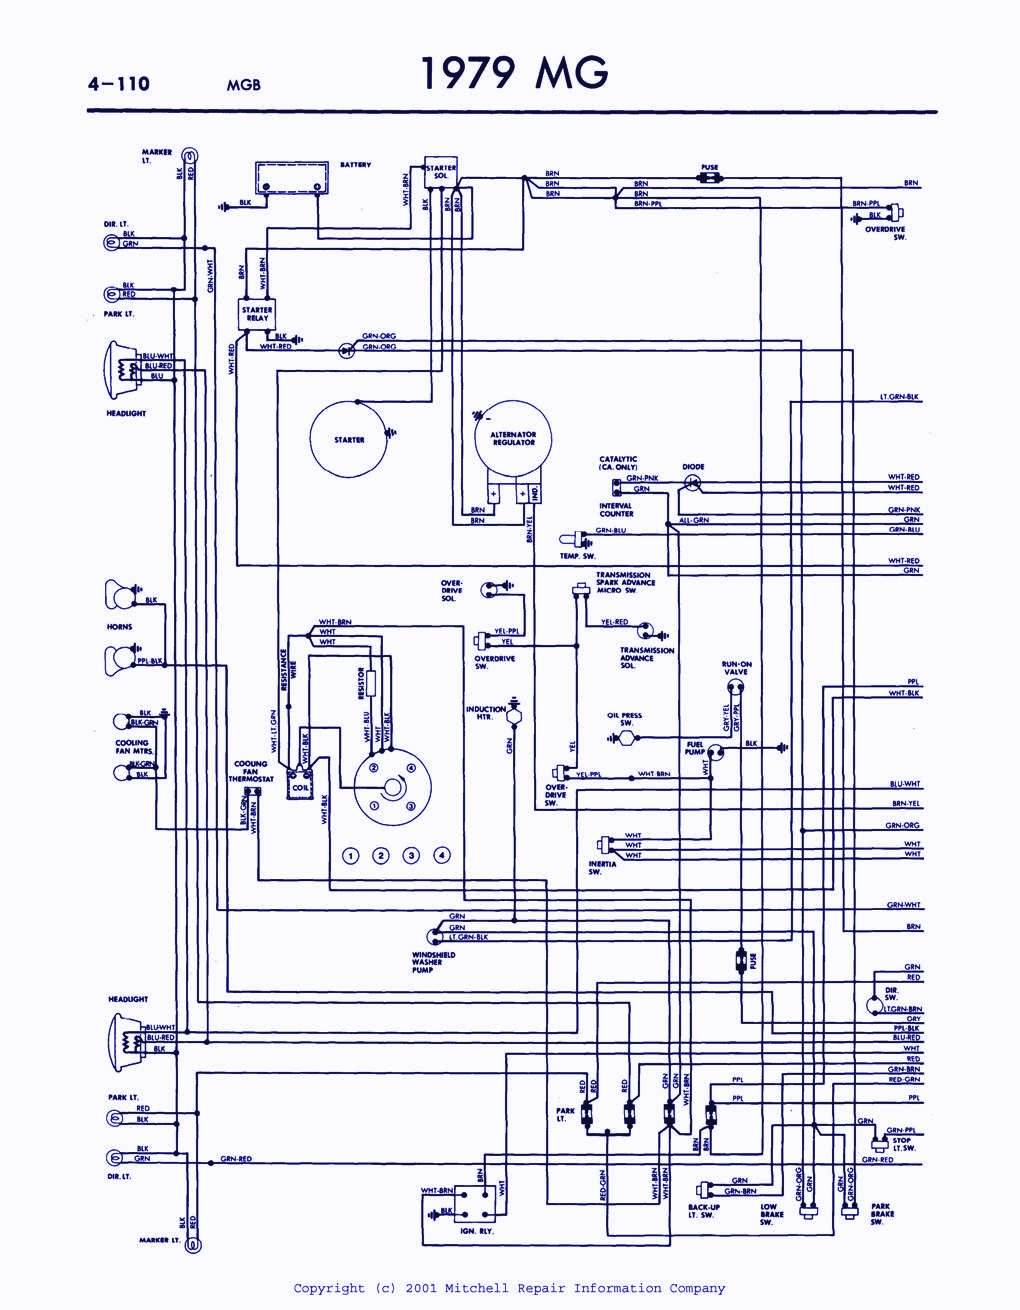 small resolution of 1976 mgb engine diagram wiring diagram yer mgb engine parts diagram 1976 mgb engine diagram wiring